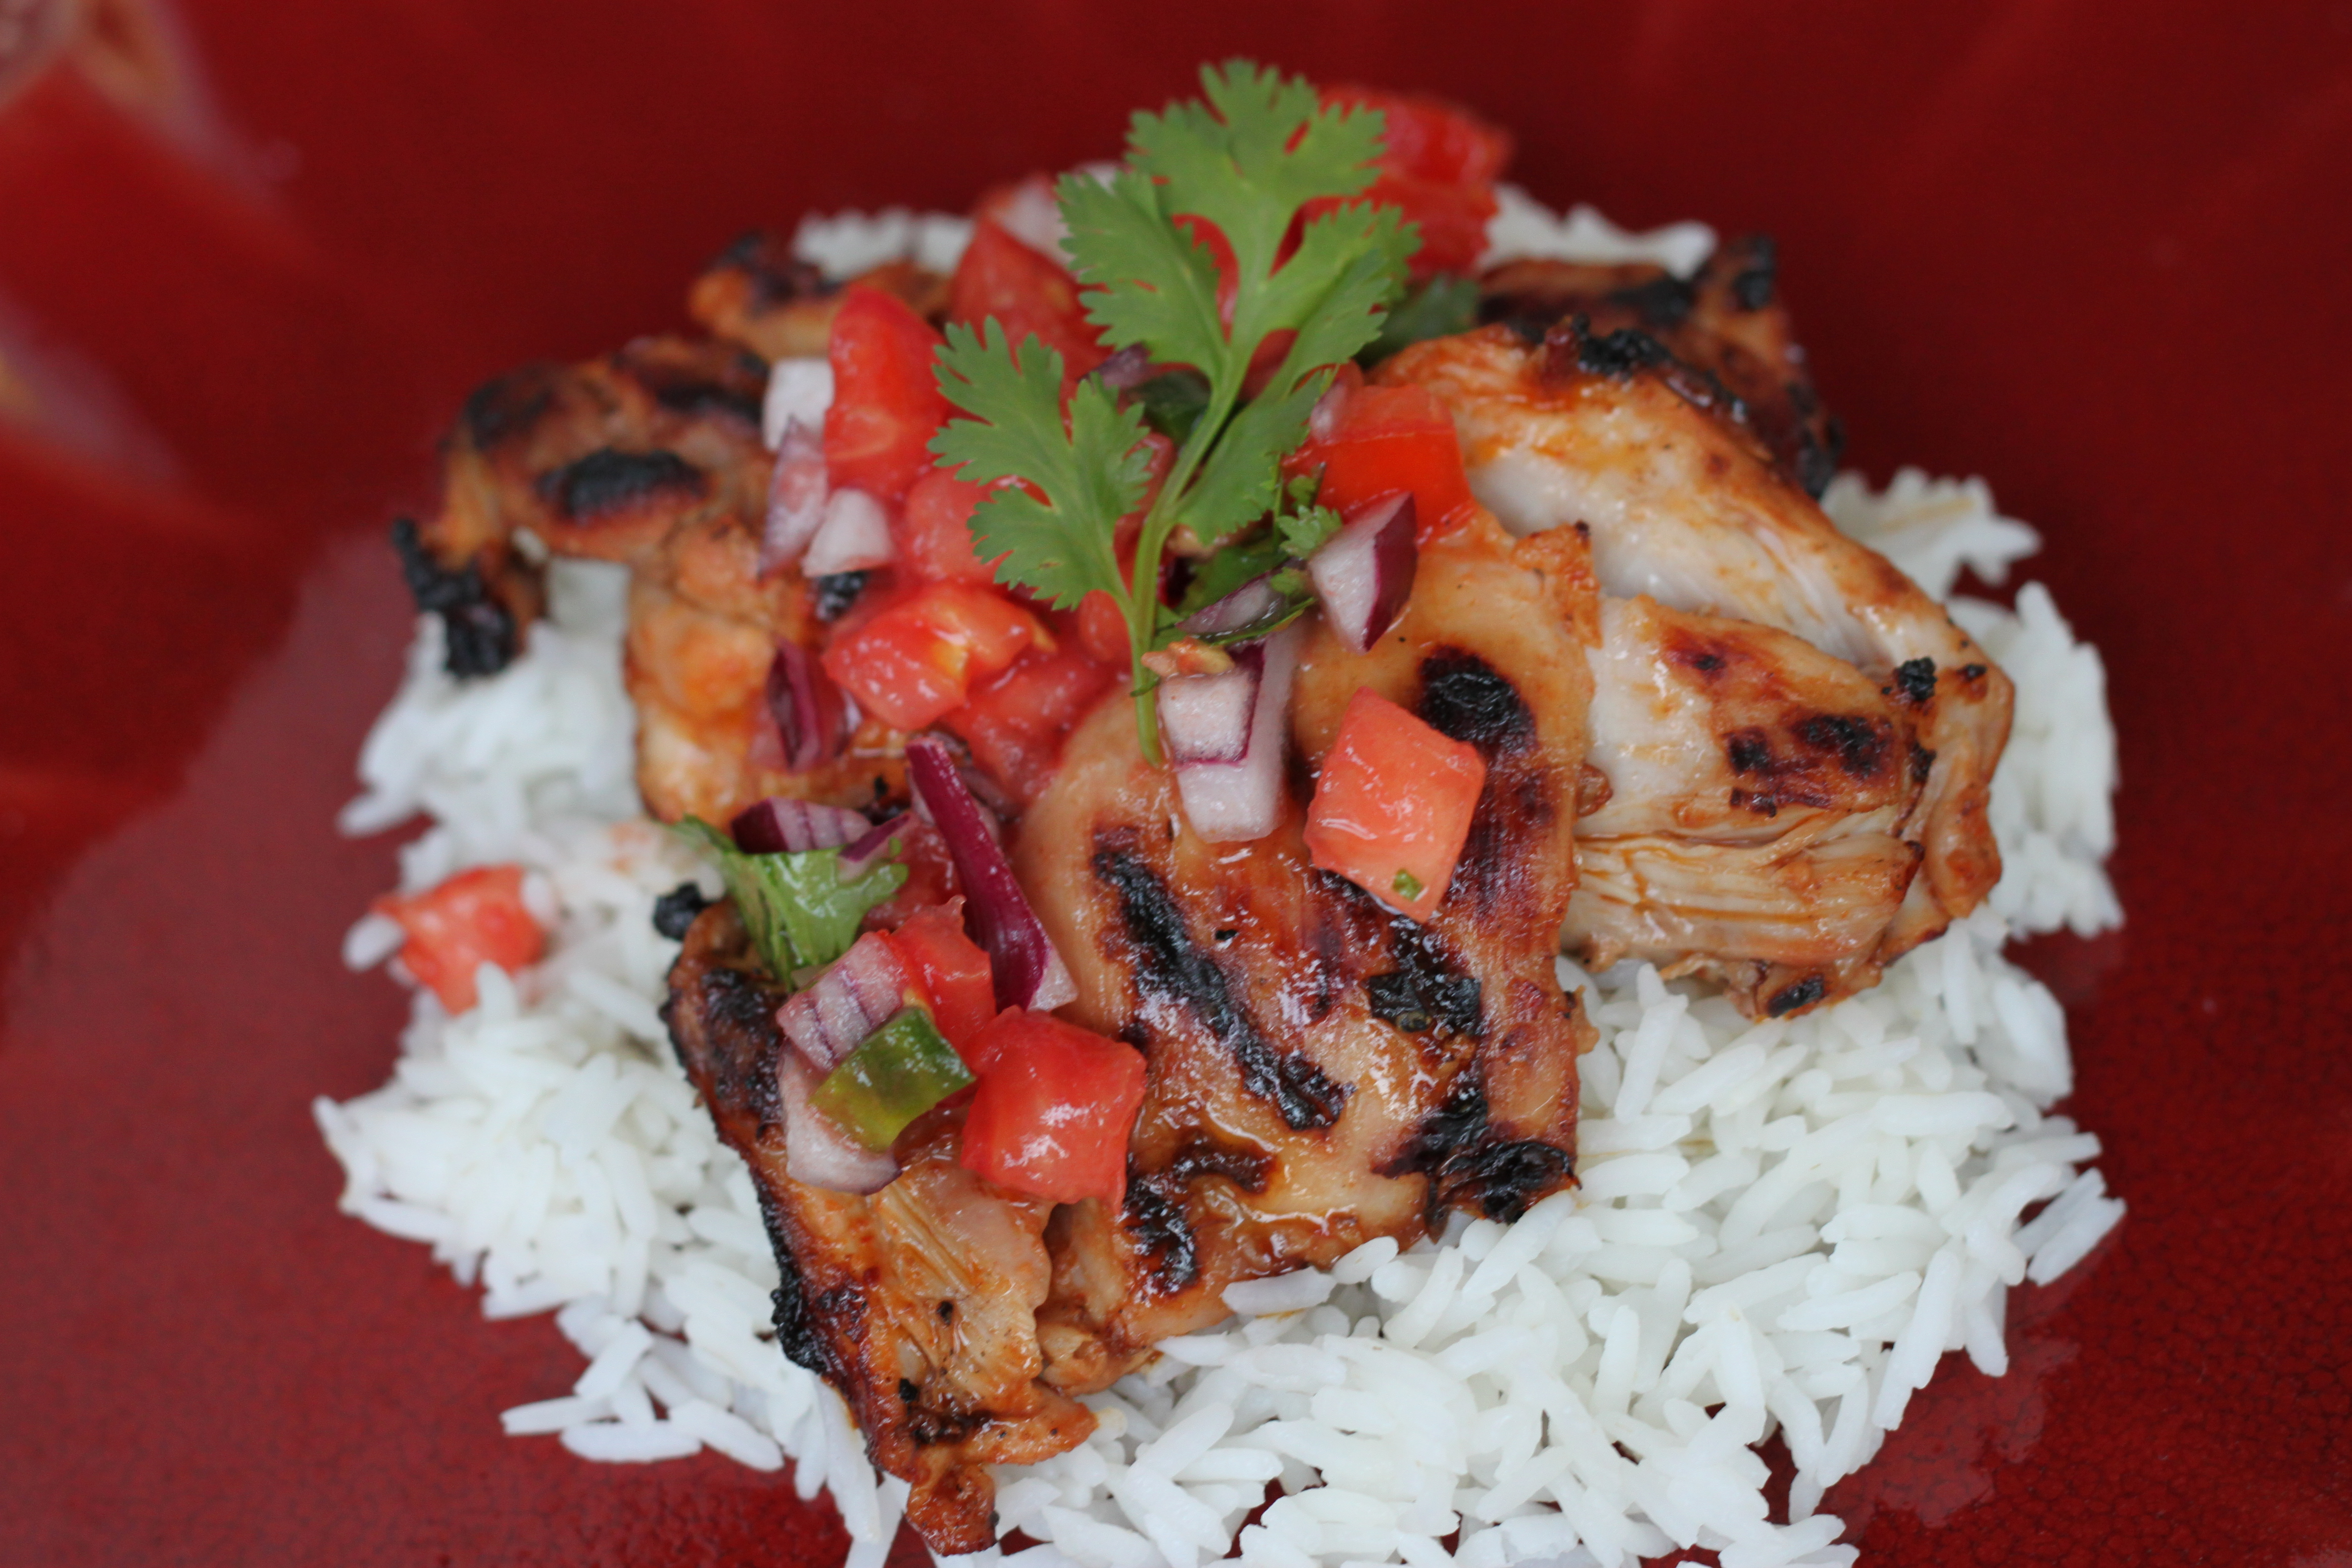 Chipotle Lime Grilled Chicken Thighs With Pico De Gallo